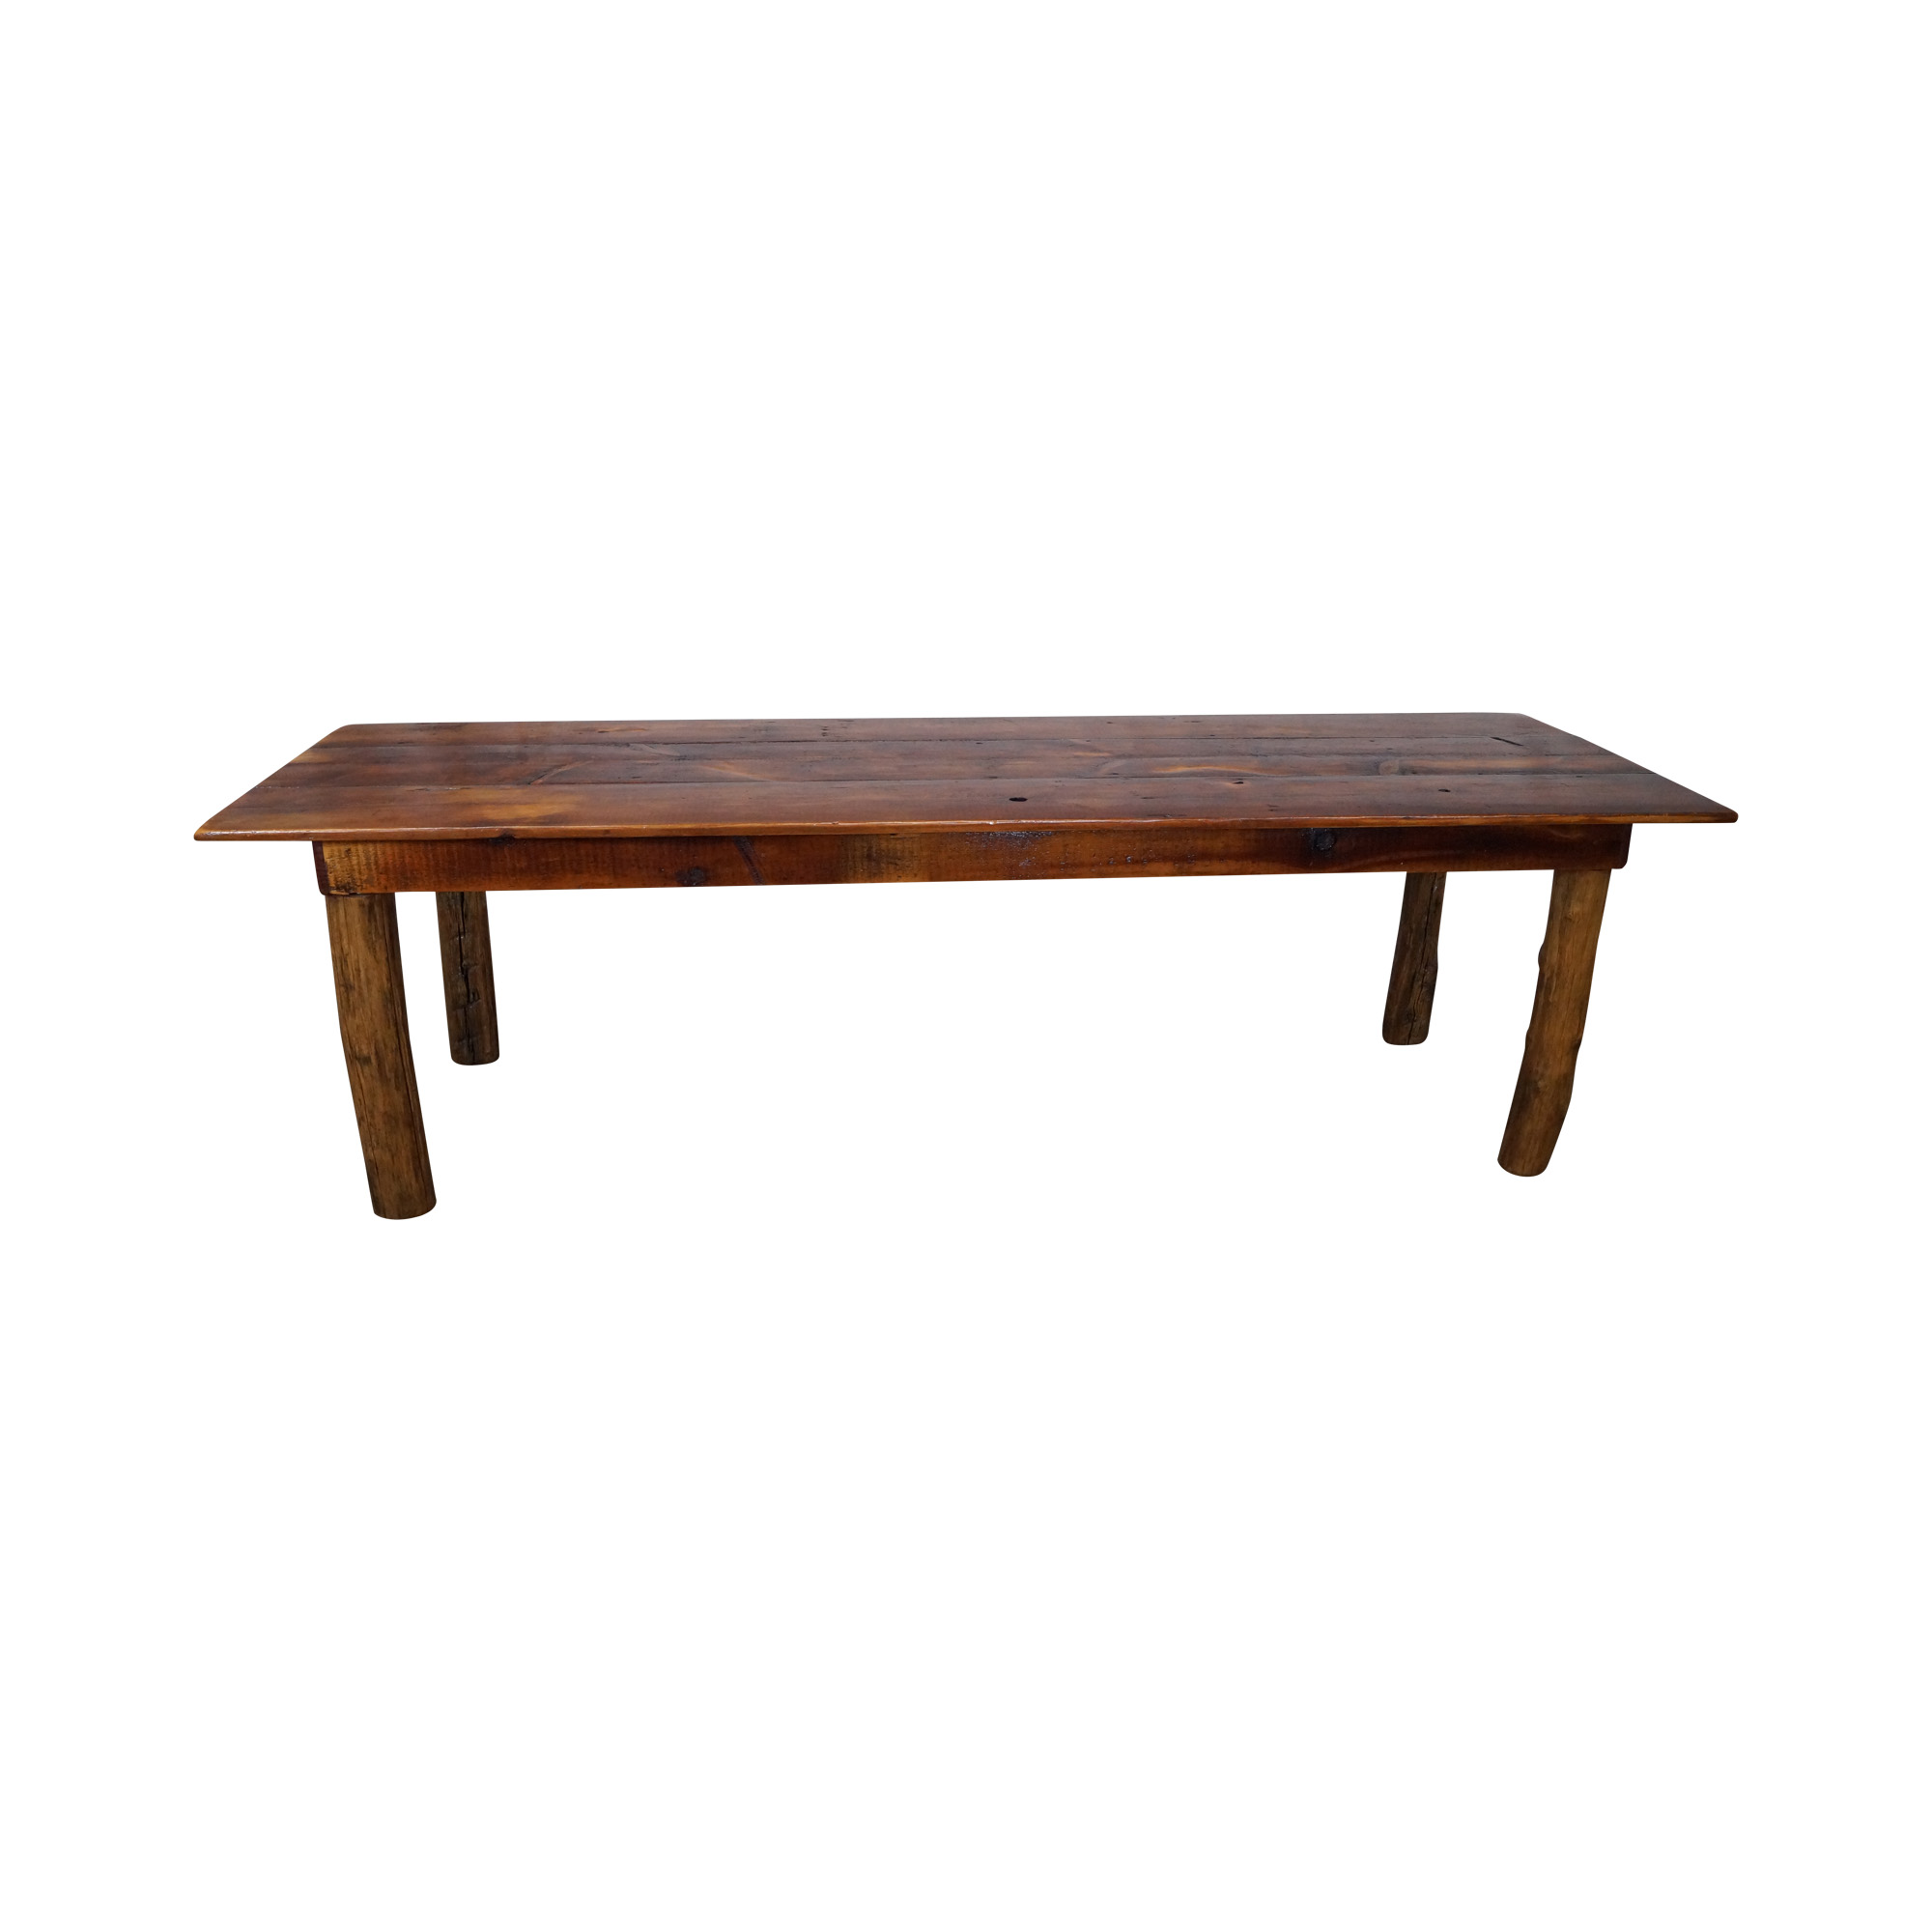 Antique Salvage Wood Long Pine Farm Dining Table